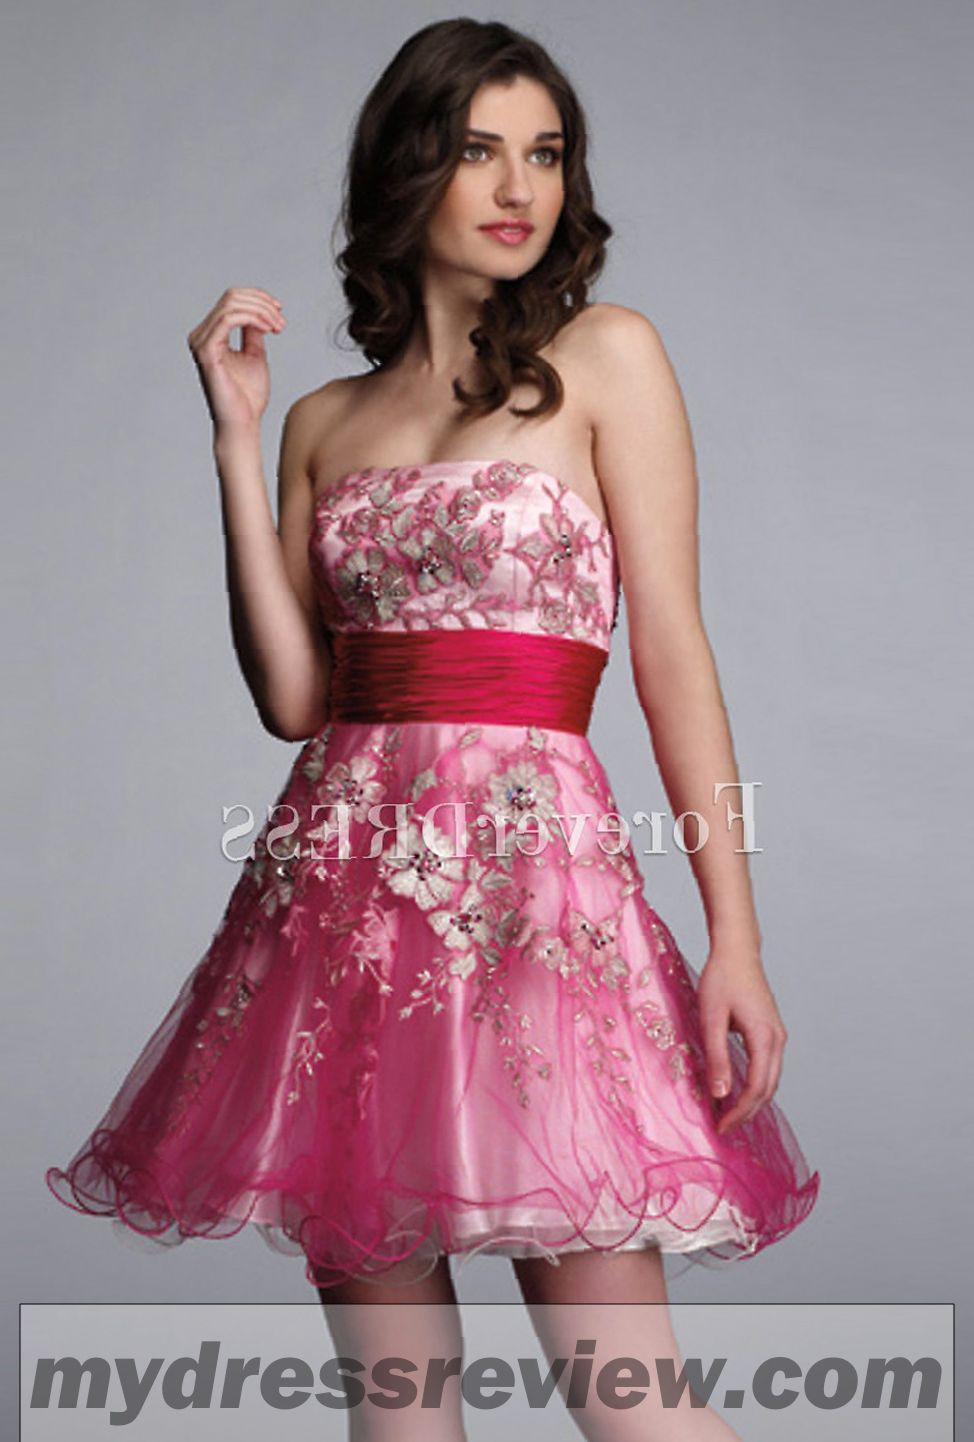 8eac49ffb88 I know a very good website which provides kinds of prom dresses with good  quality